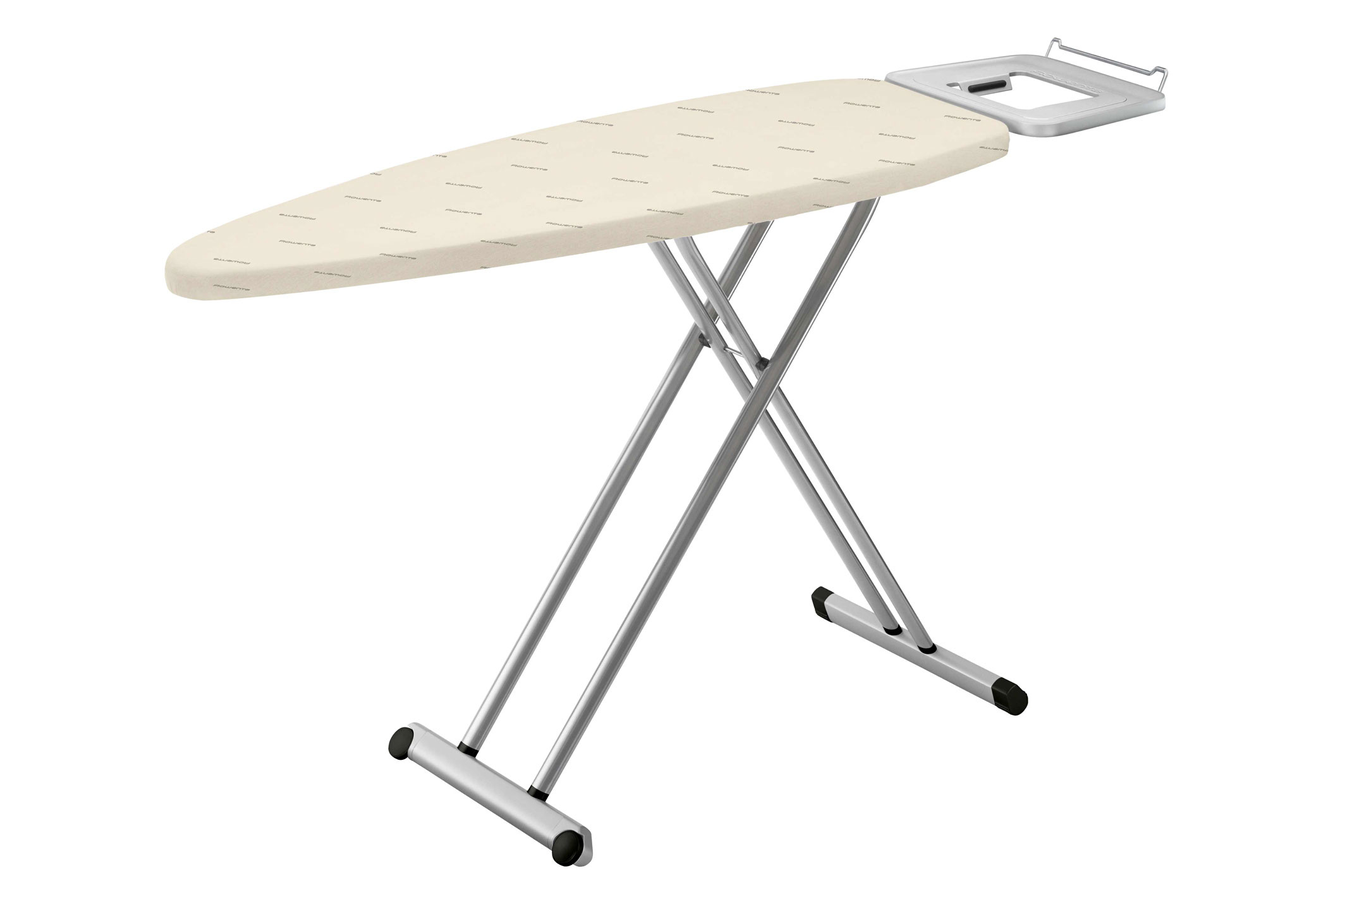 Table a repasser rowenta ib5100d1 pro comfort procomfort 3651584 darty Table a repasser speciale centrale vapeur